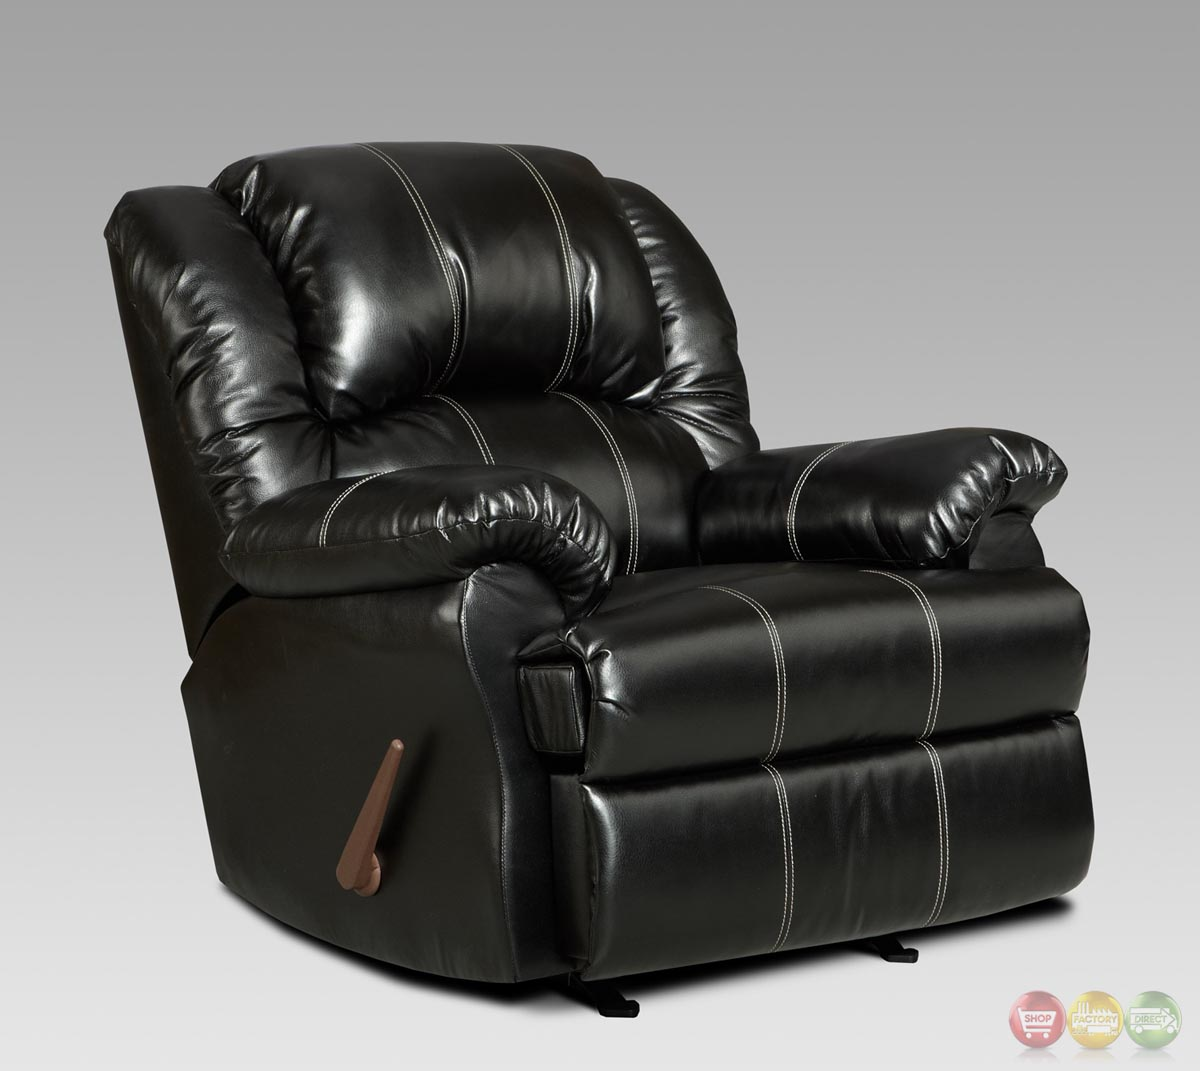 Taos Black Bonded Leather Rocker Recliner Casual Reclining